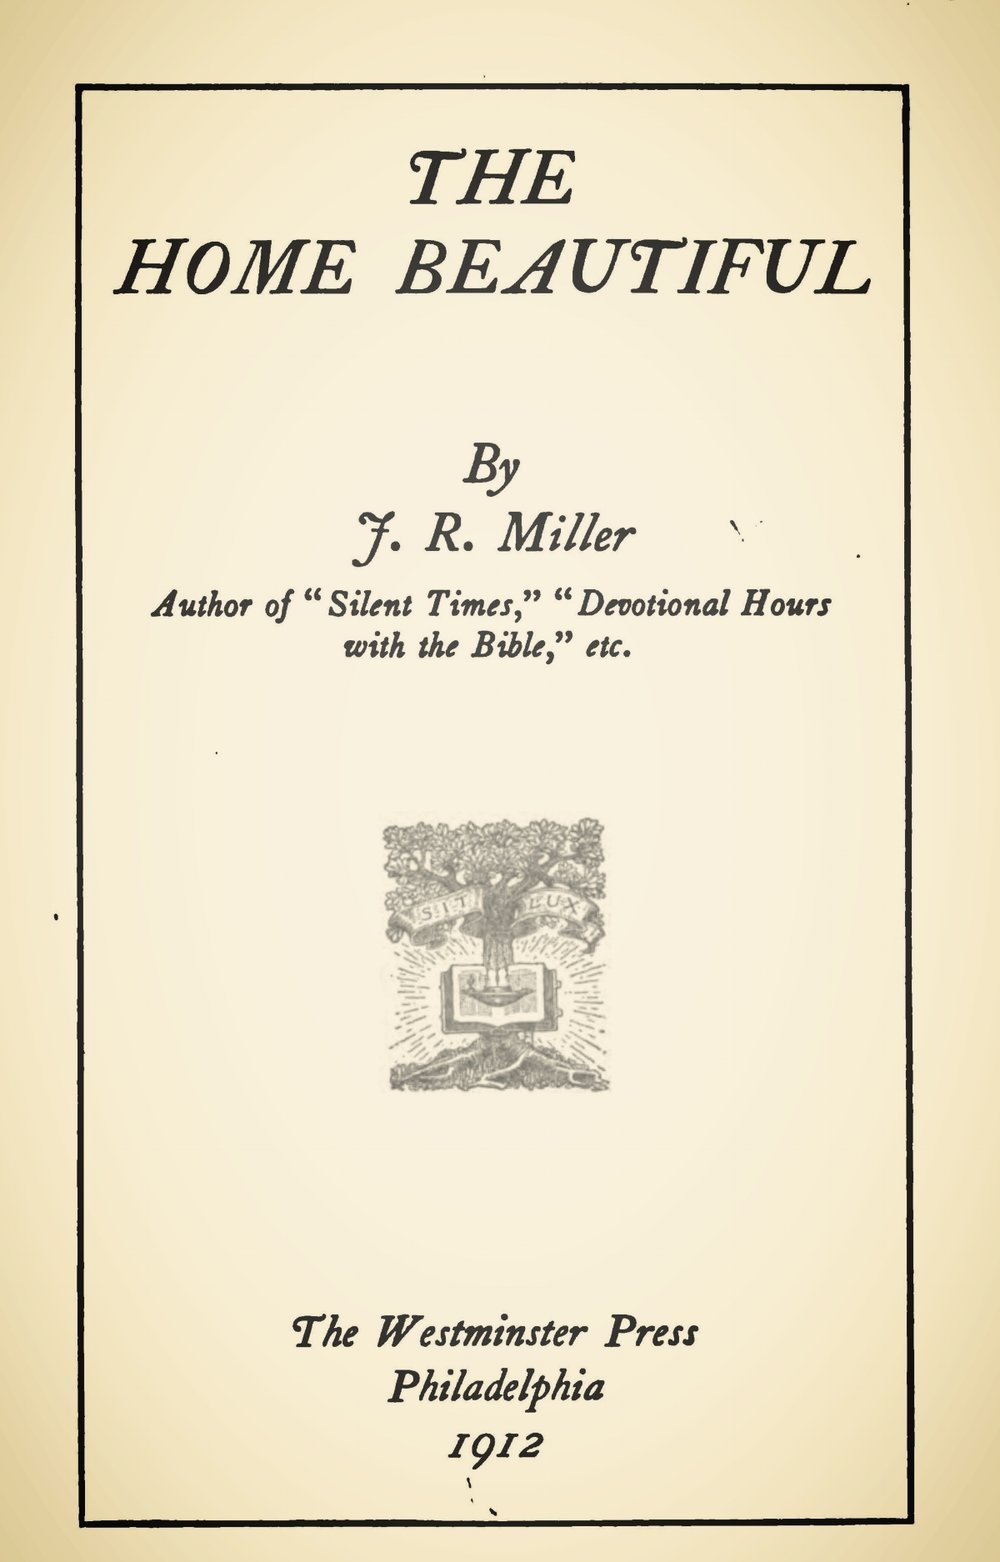 Miller, James Russell, The Home Beautiful Title Page.jpg